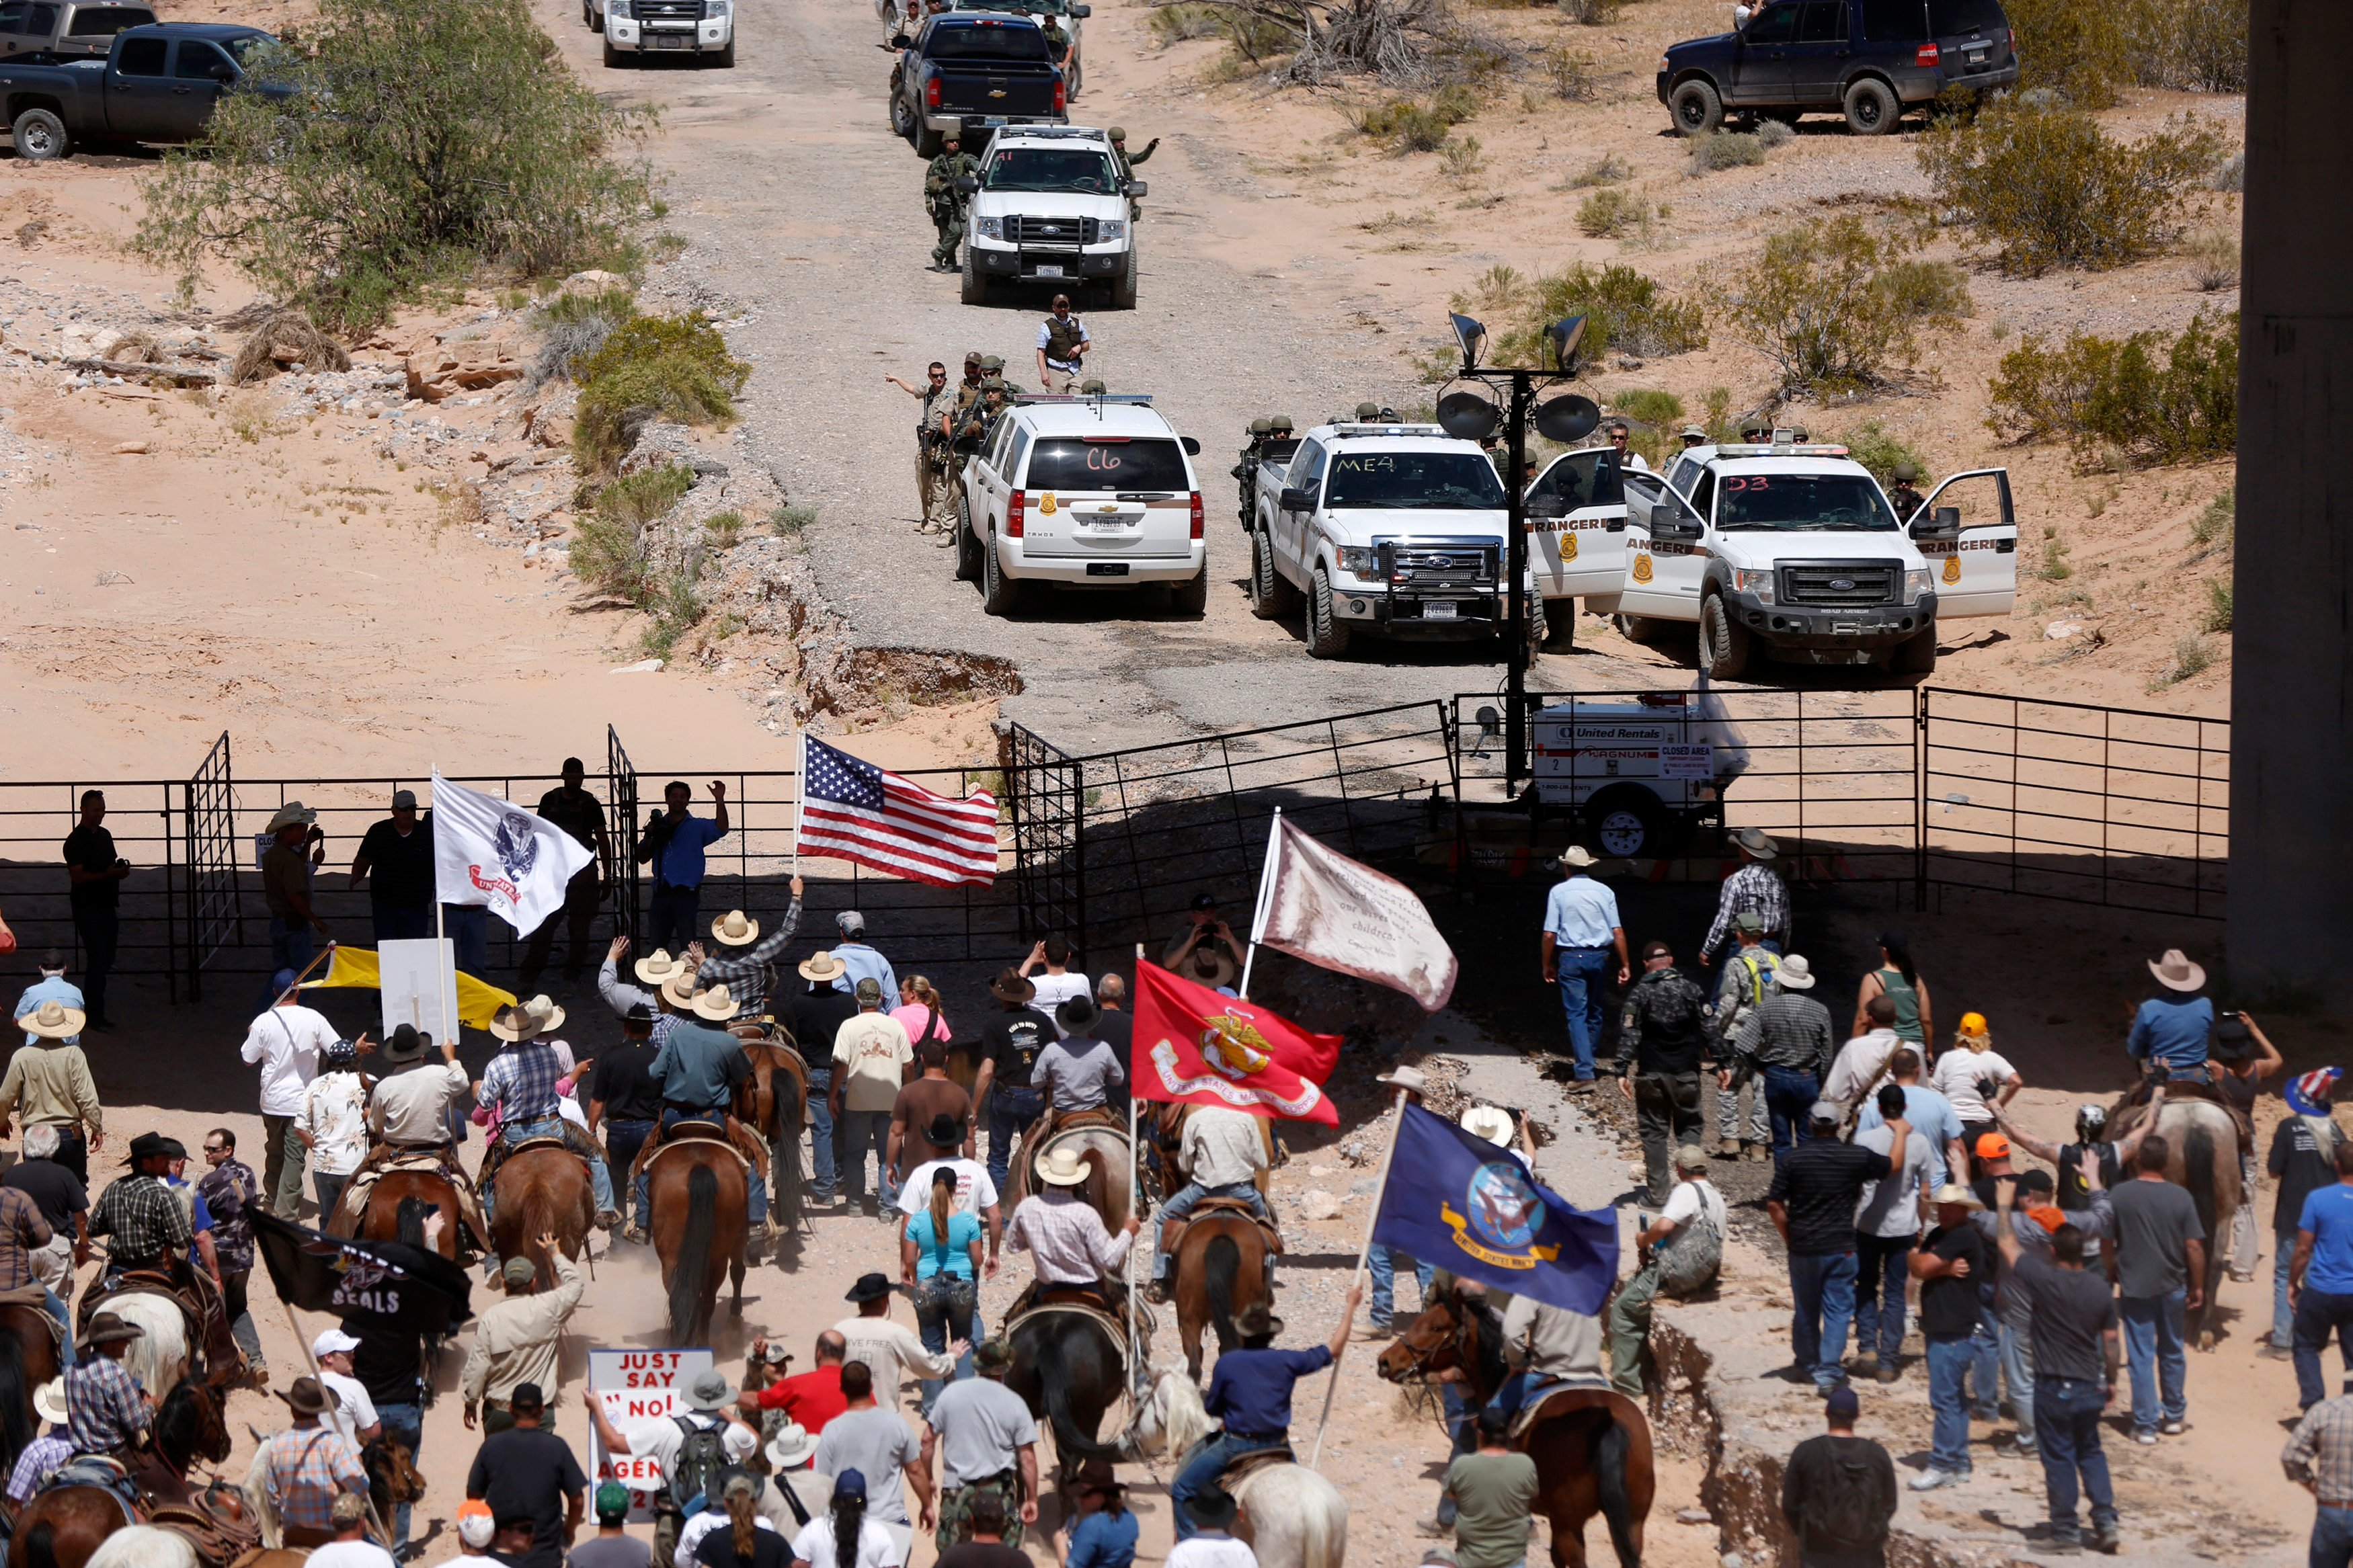 Protesters gather at the Bureau of Land Management's base camp, where cattle that were seized from rancher Cliven Bundy are being held, near Bunkerville, Nevada April 12, 2014. REUTERS/Jim Urquhart